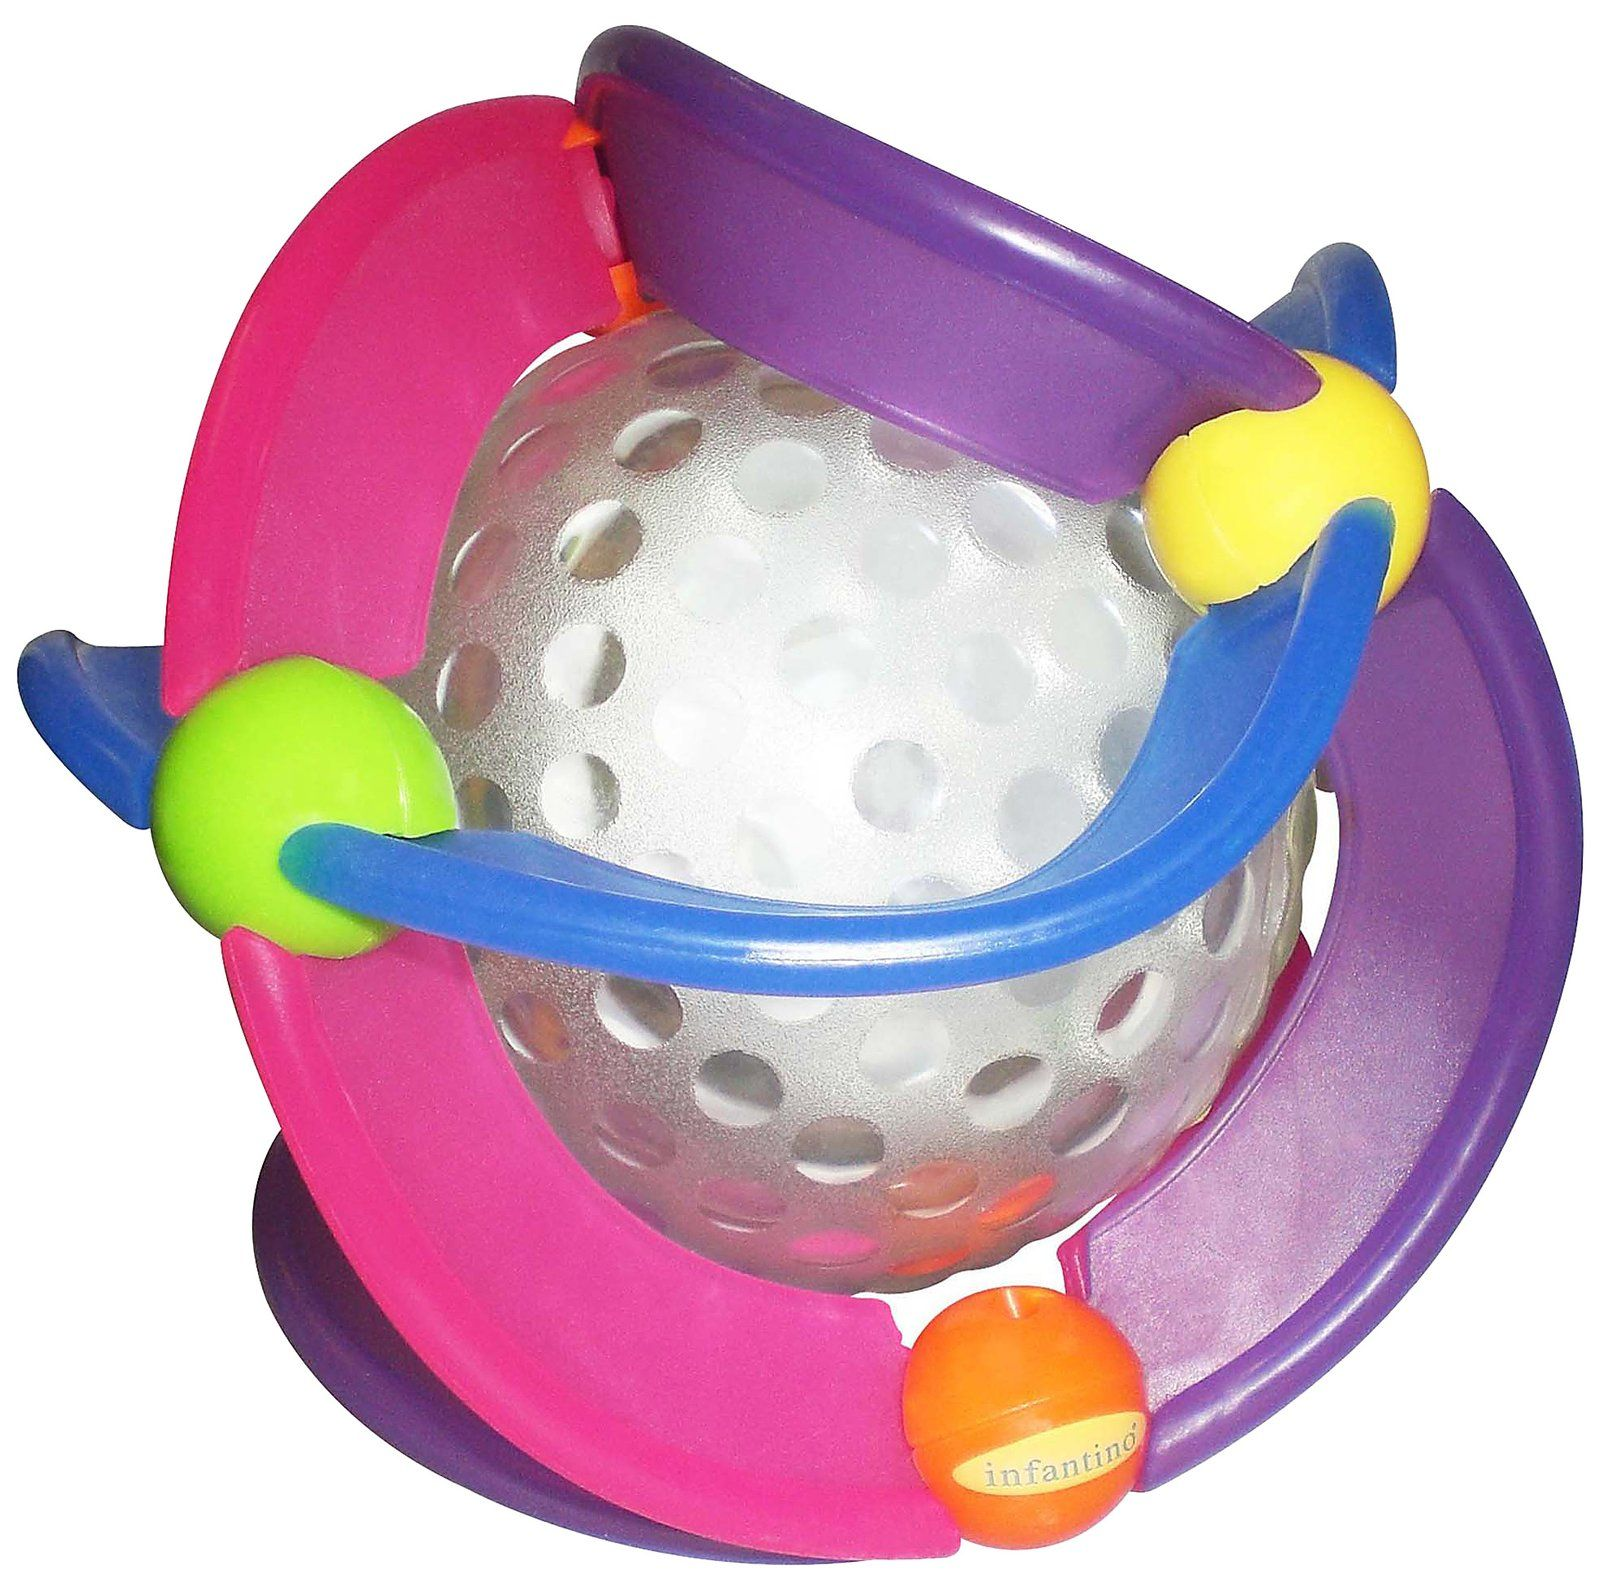 Infantino Light & Sound Ball Best Price Great kids toy